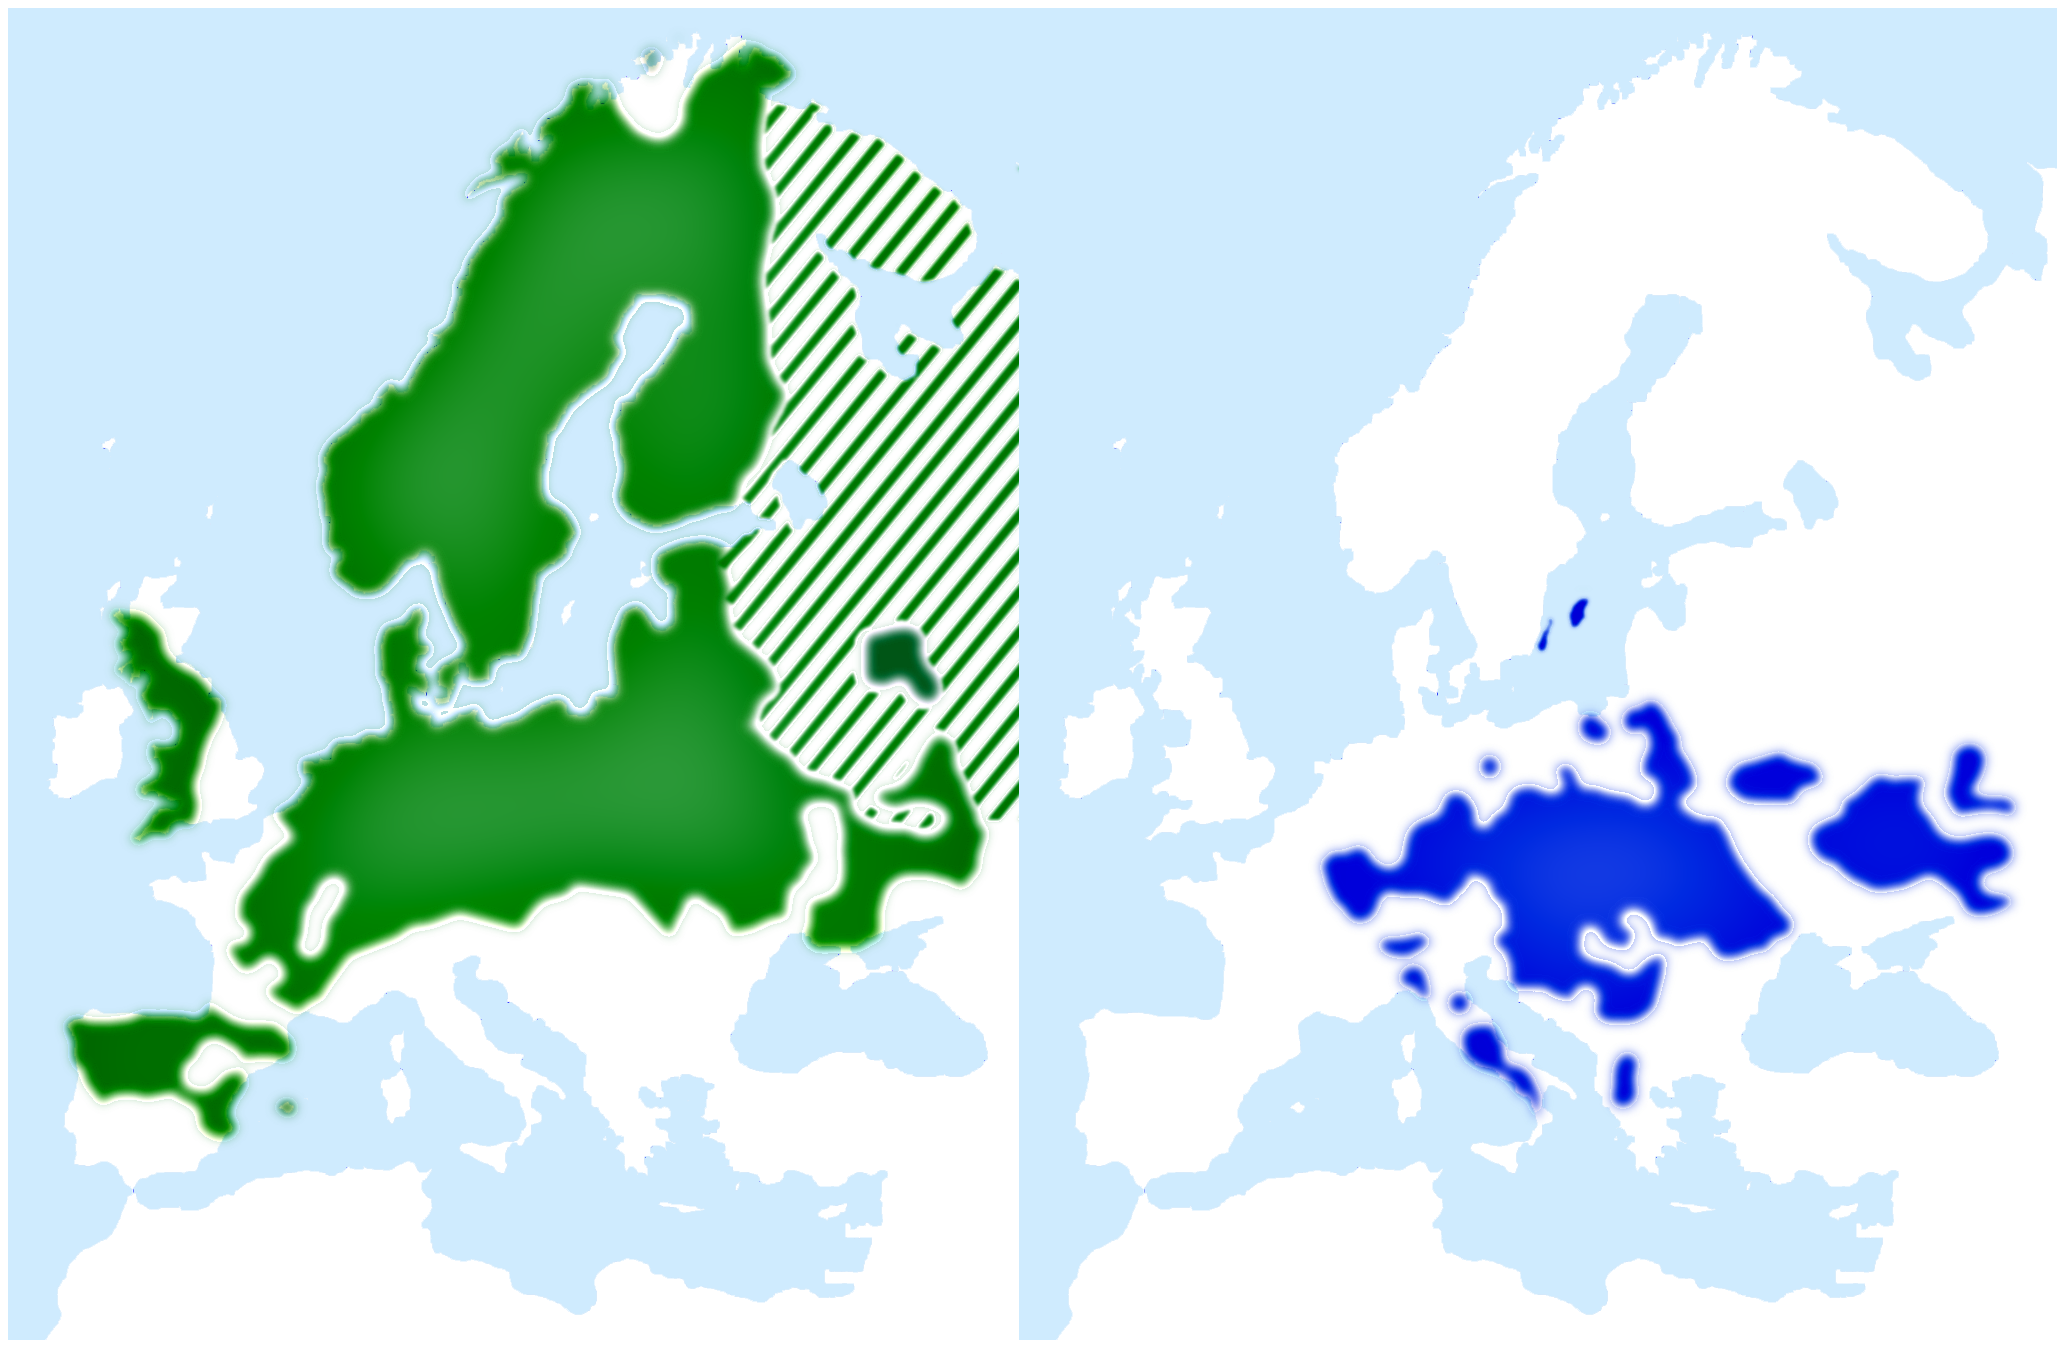 Breeding range distributions of pied flycatcher (green) and collared flycatcher (blue).